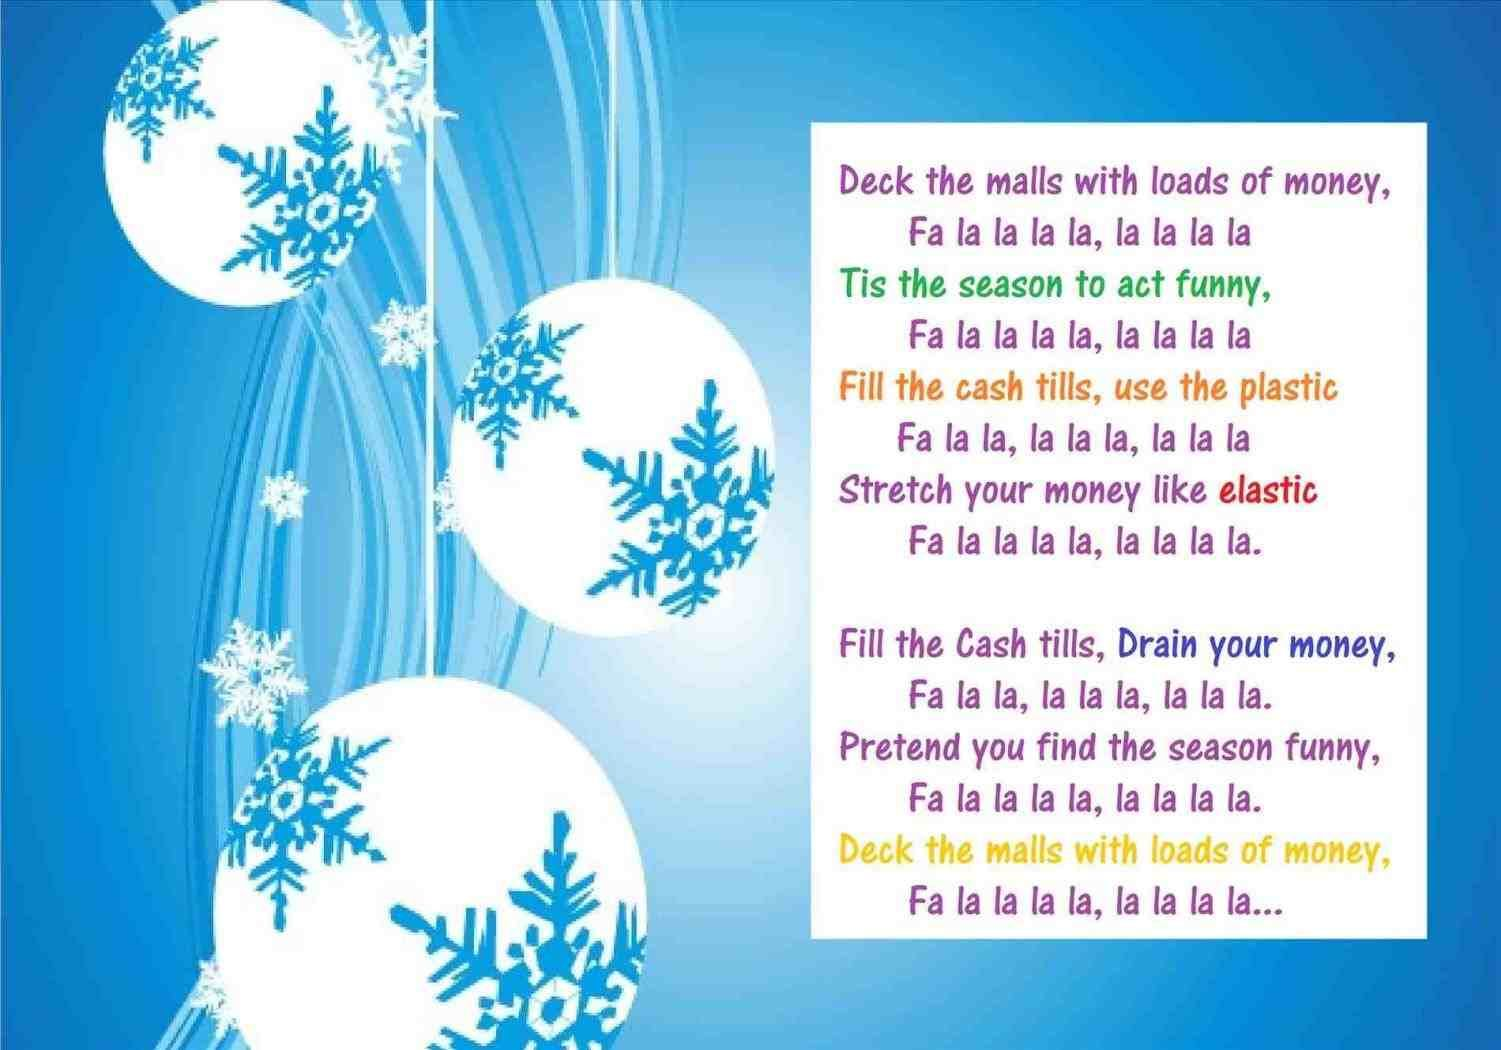 New post cute christmas poems for friends xmast pinterest share free funny christmas poems to our friends kids husbands wifes boys and girls for wishing find xmas day greetings and wishes poems on christmas kristyandbryce Choice Image